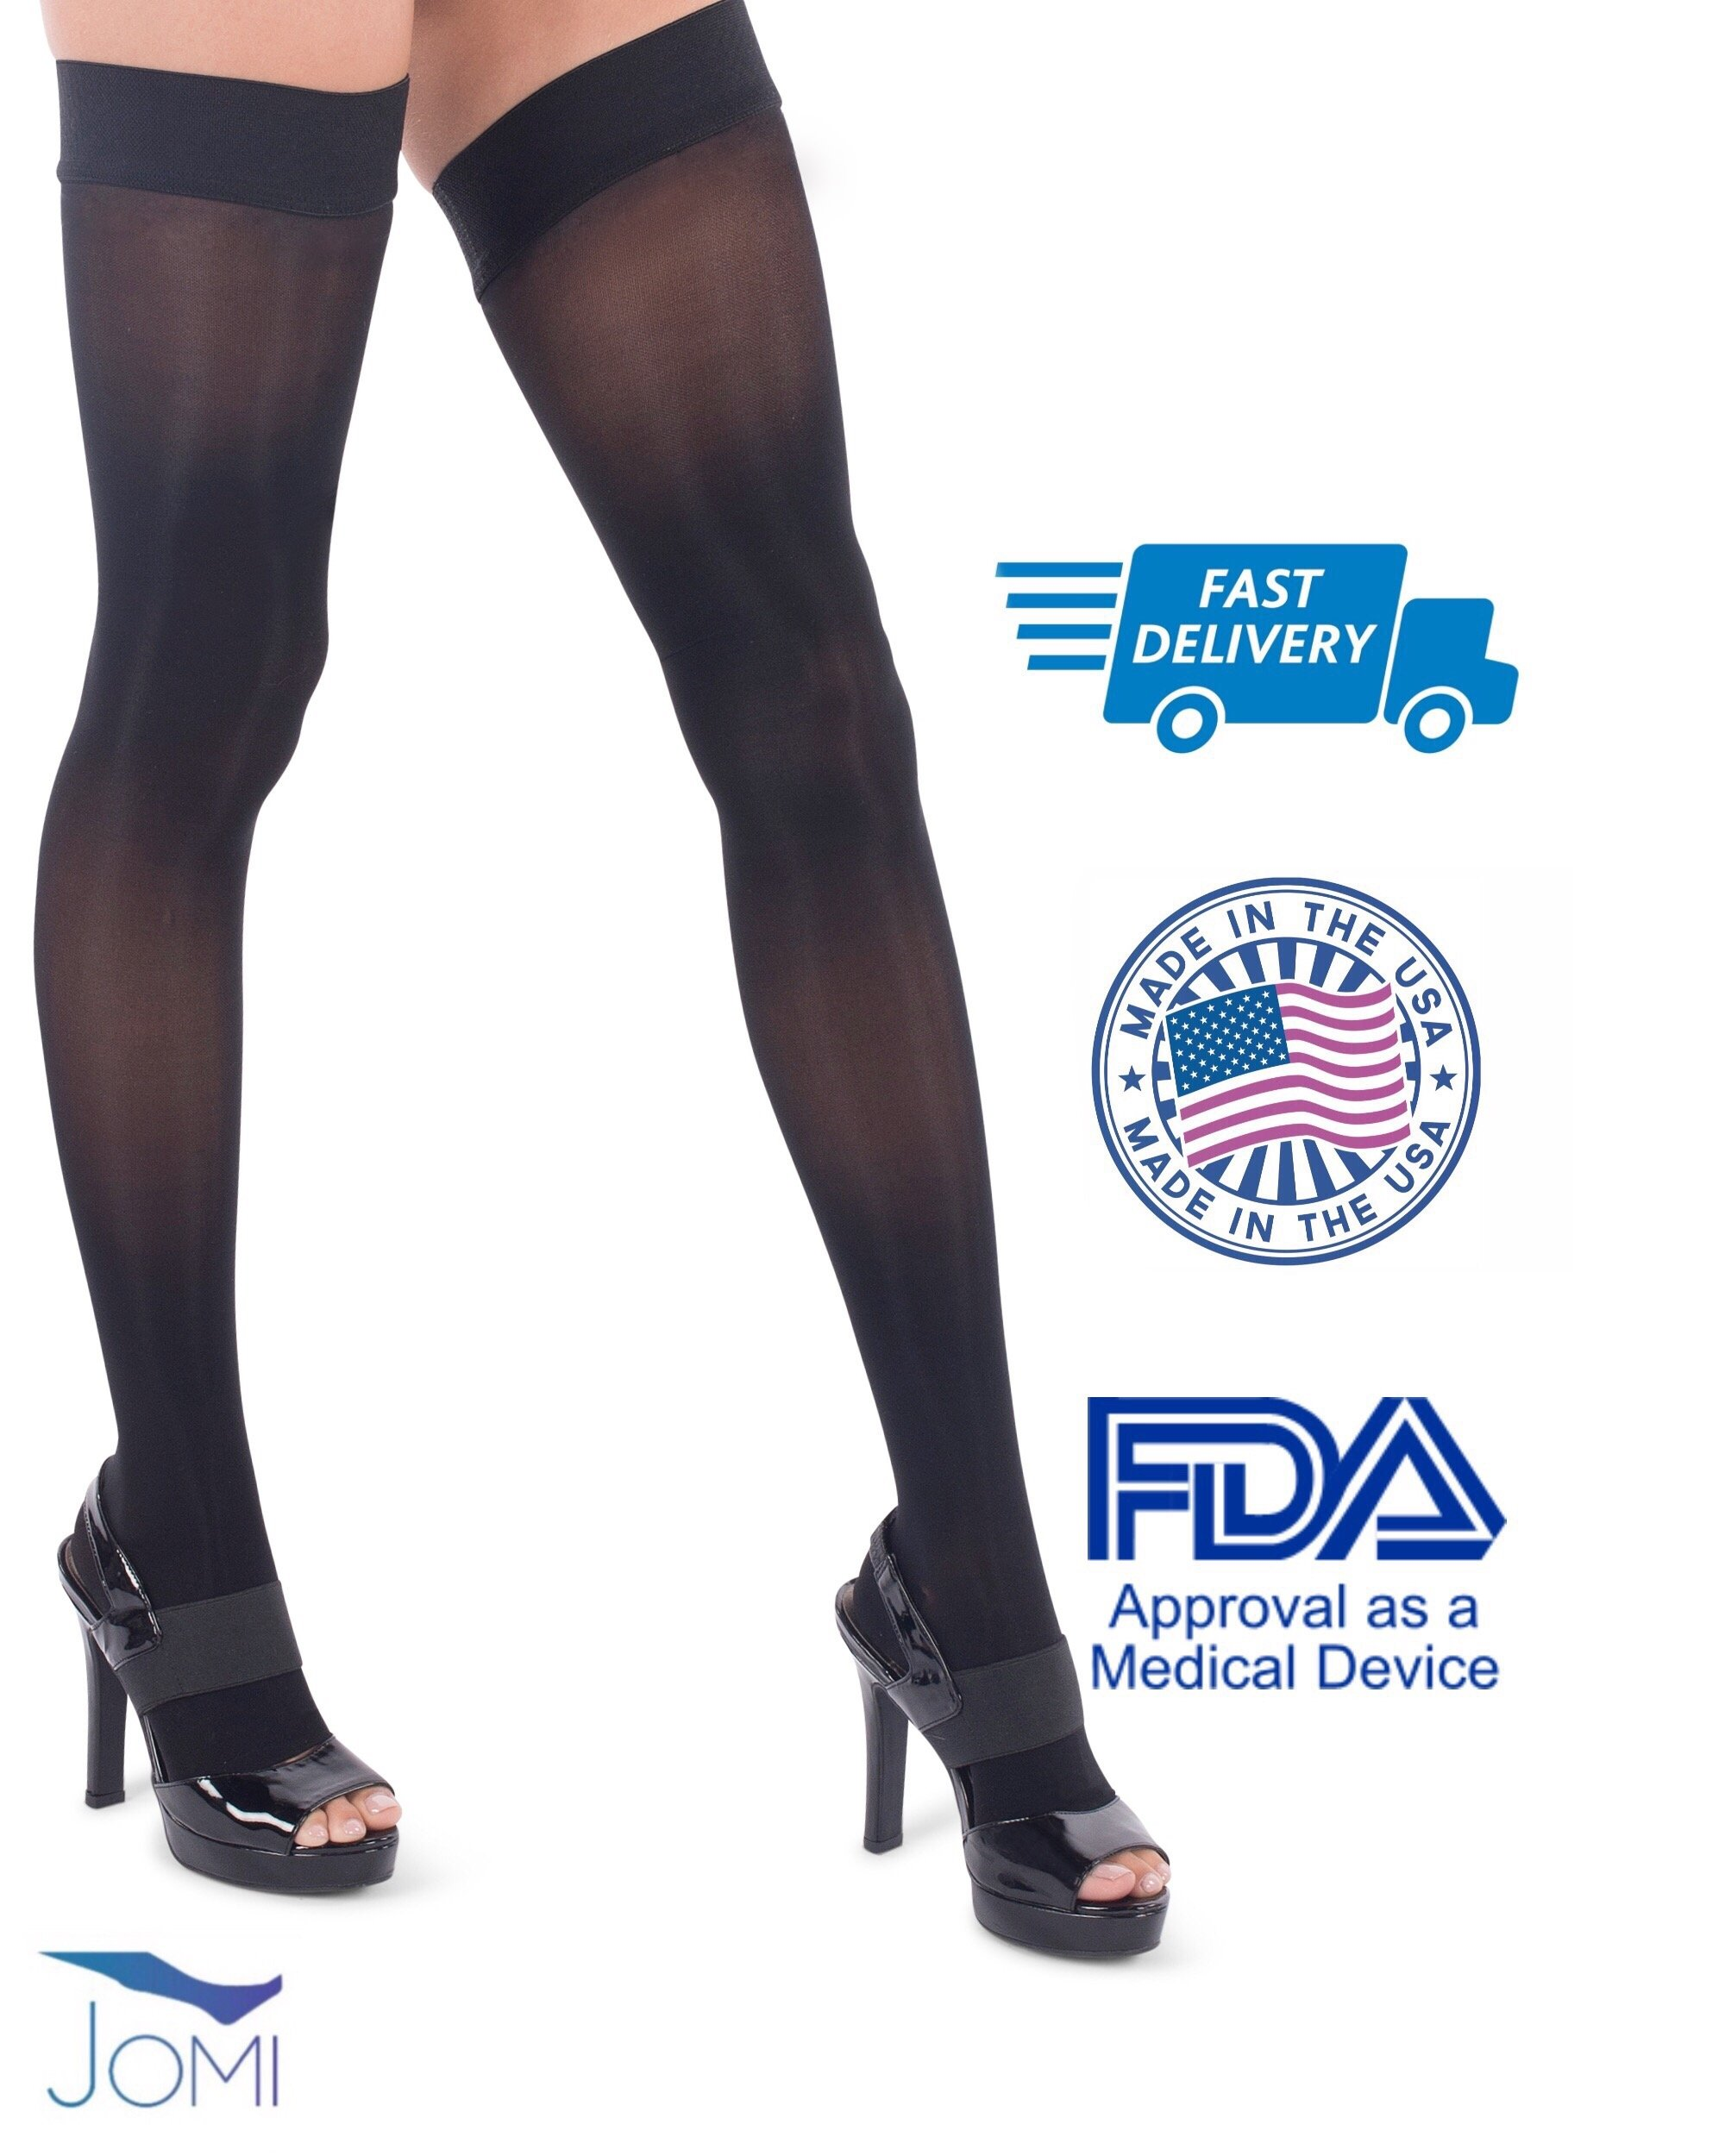 Jomi Compression, Unisex, Thigh High Stockings Collection, 15-20mmHg Sheer Open Toe 152 (Large, Black) by JOMI COMPRESSION